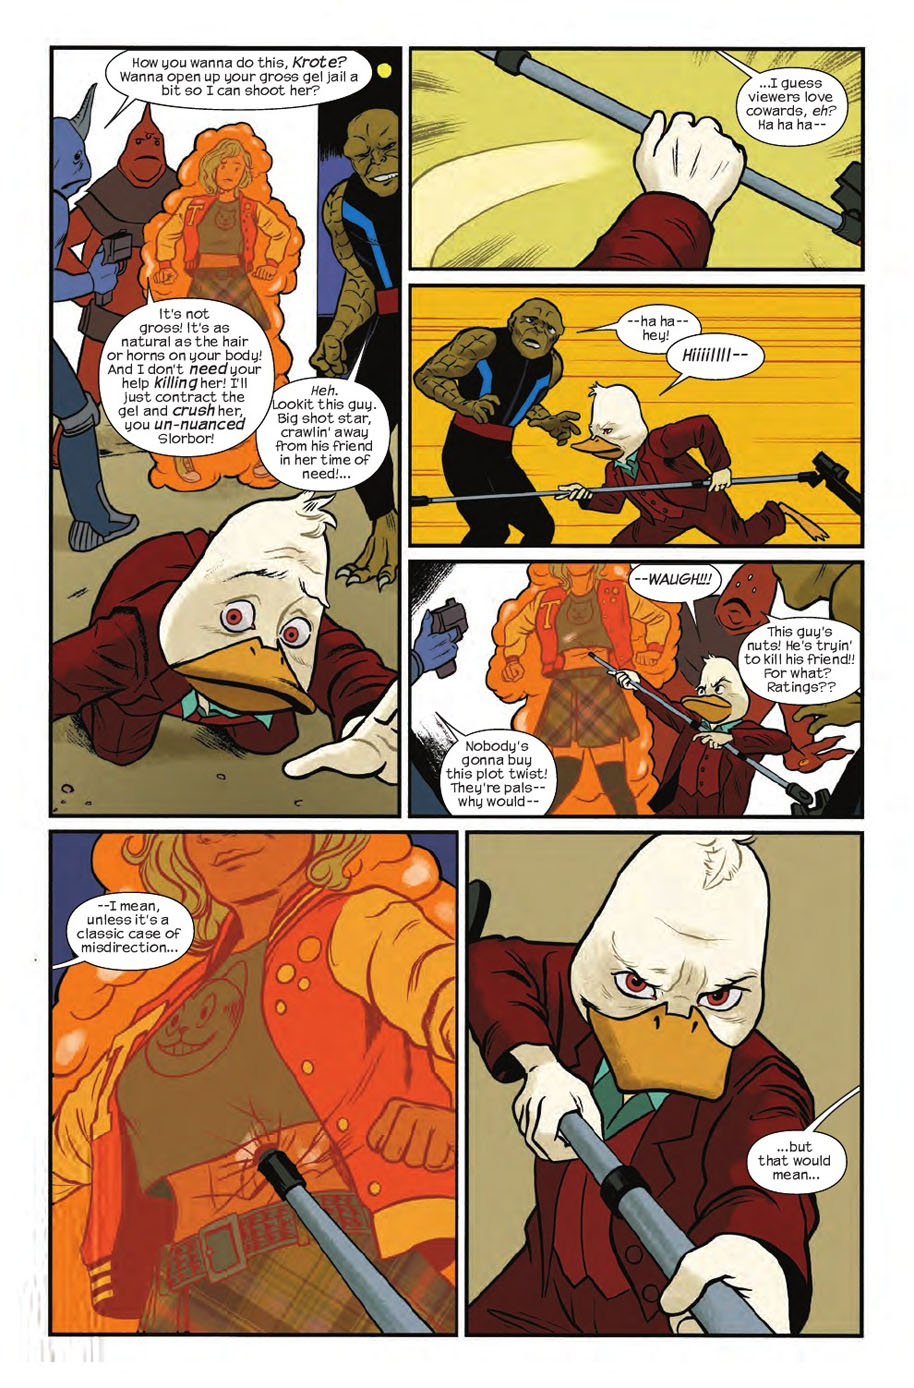 Howard the Duck 10 page 2